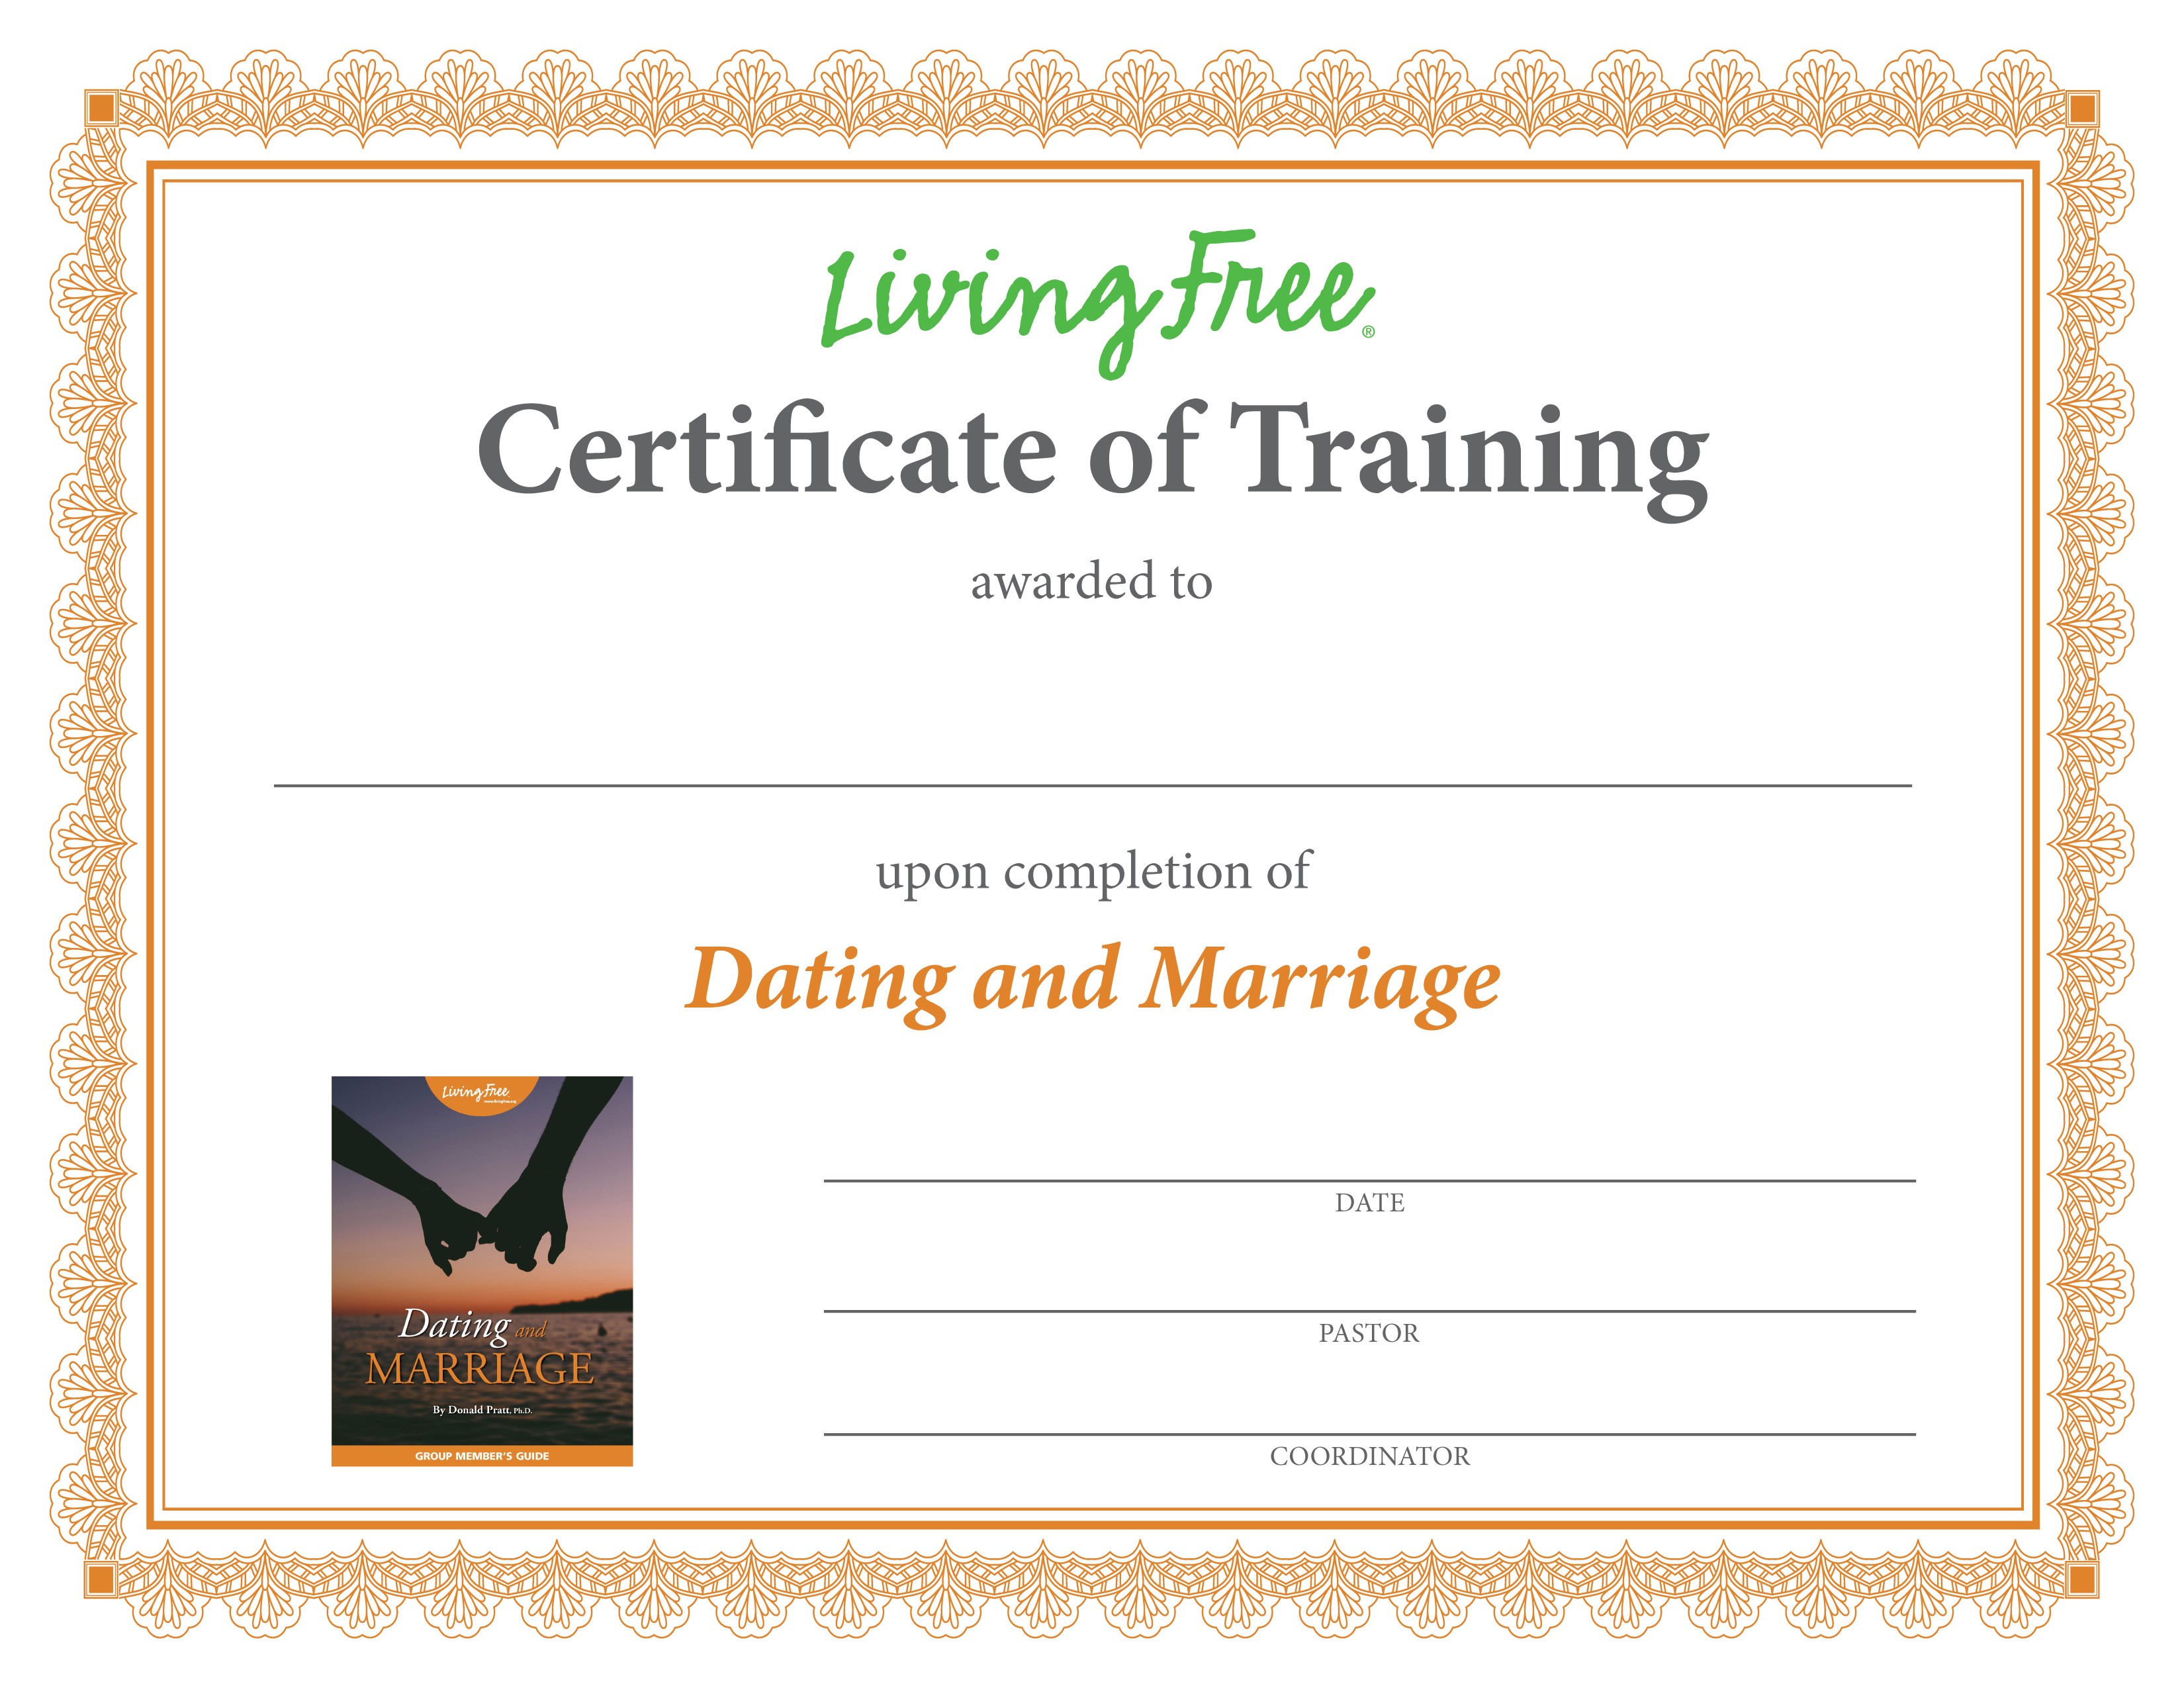 Dating and Marriage Certificate